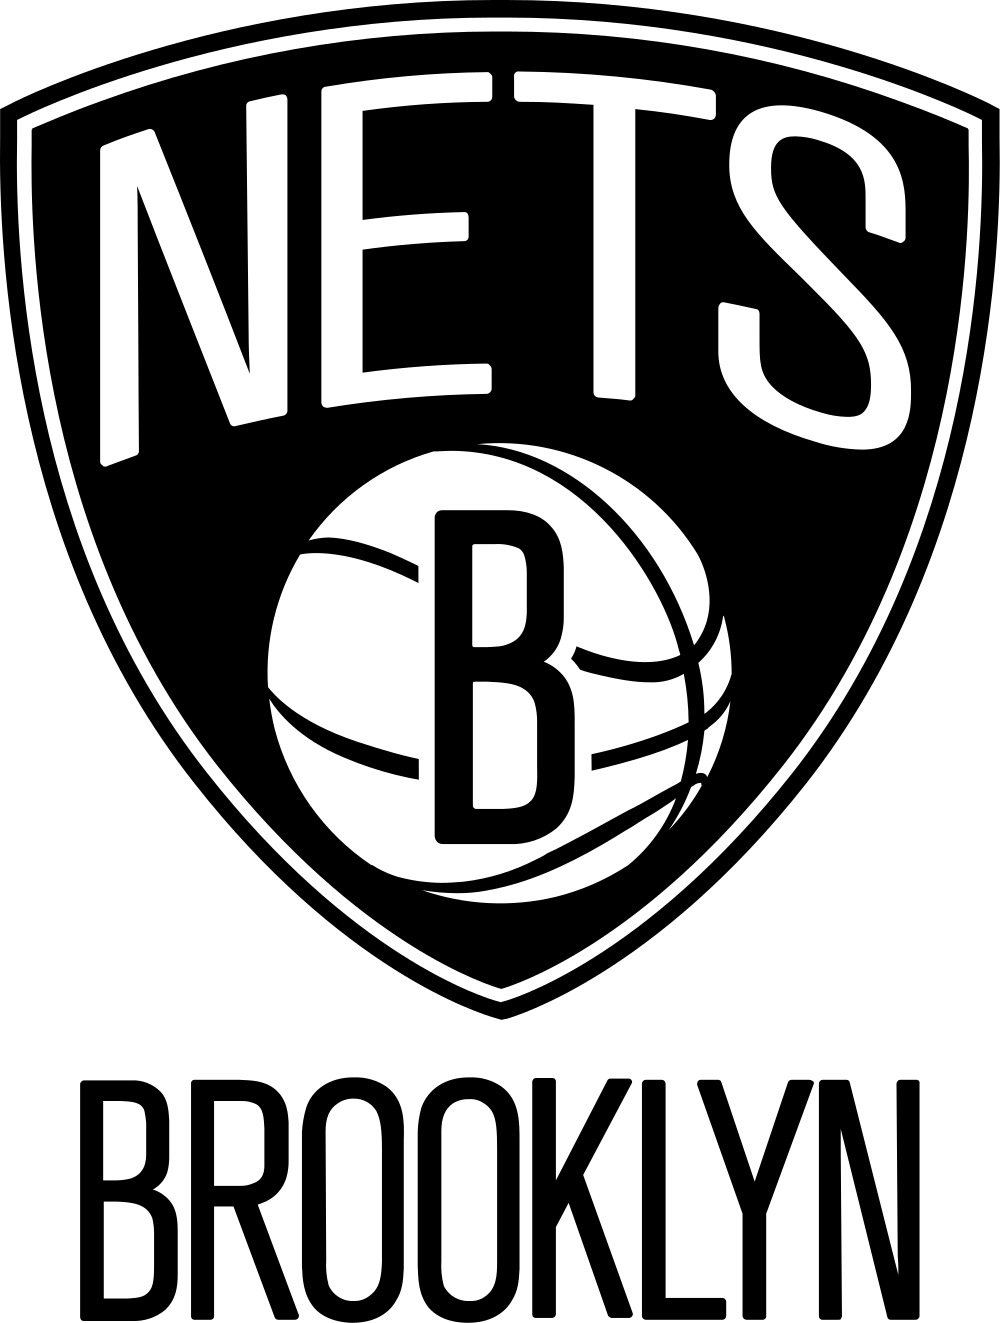 Brooklyn Nets Png - Brooklyn Nets PNG Transparent Brooklyn Nets.PNG Images. | PlusPNG